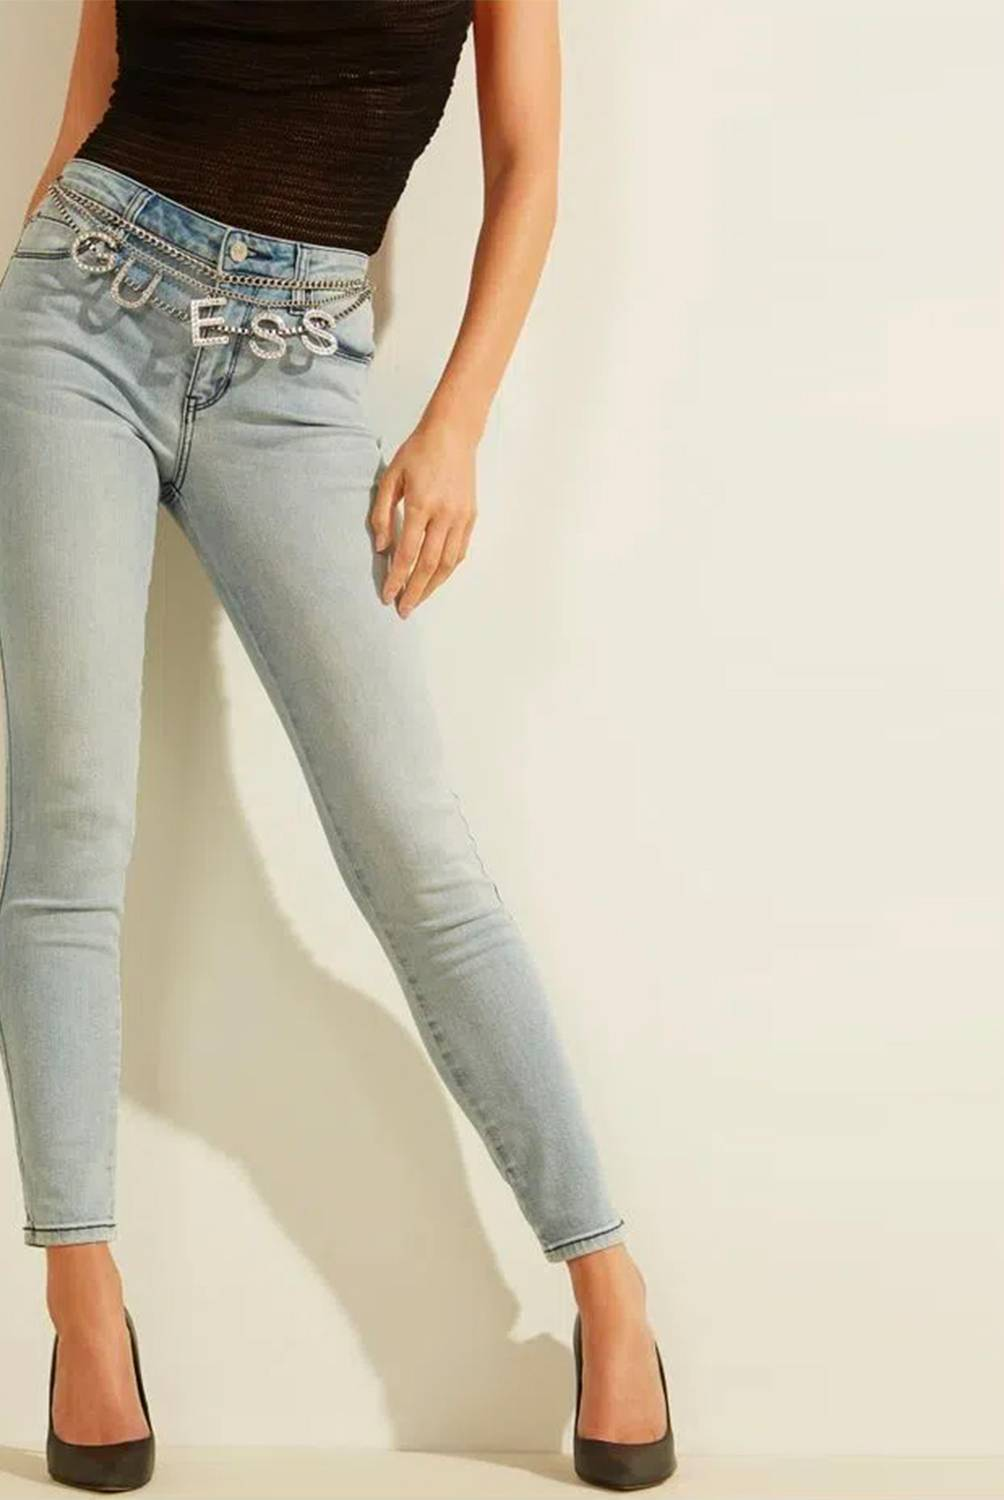 GUESS - Jeans Tight Sexy Curve Dvvg